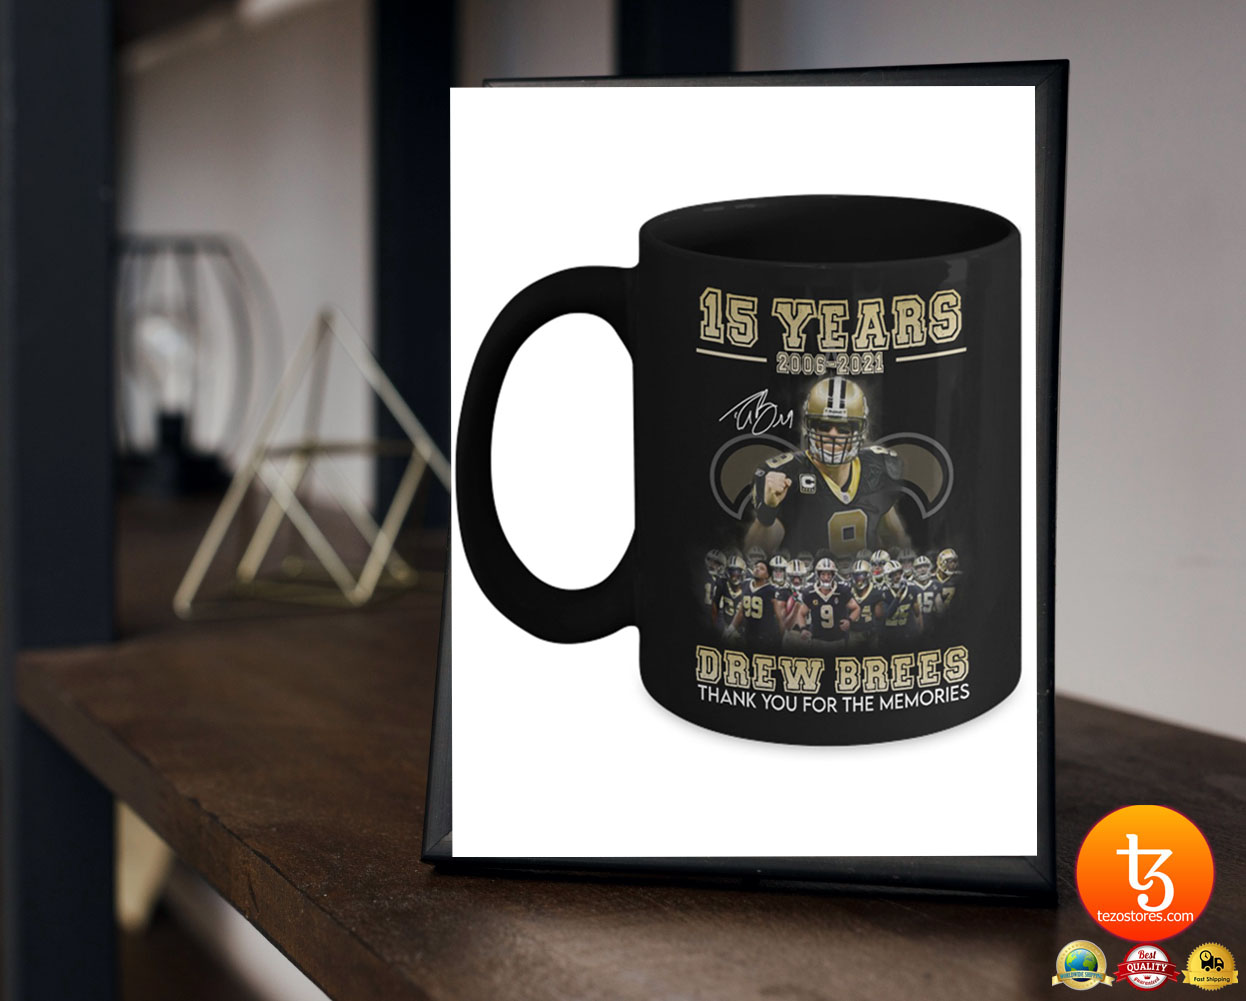 15 years 2006 - 2021 drew brees thank you for the memories mug 23